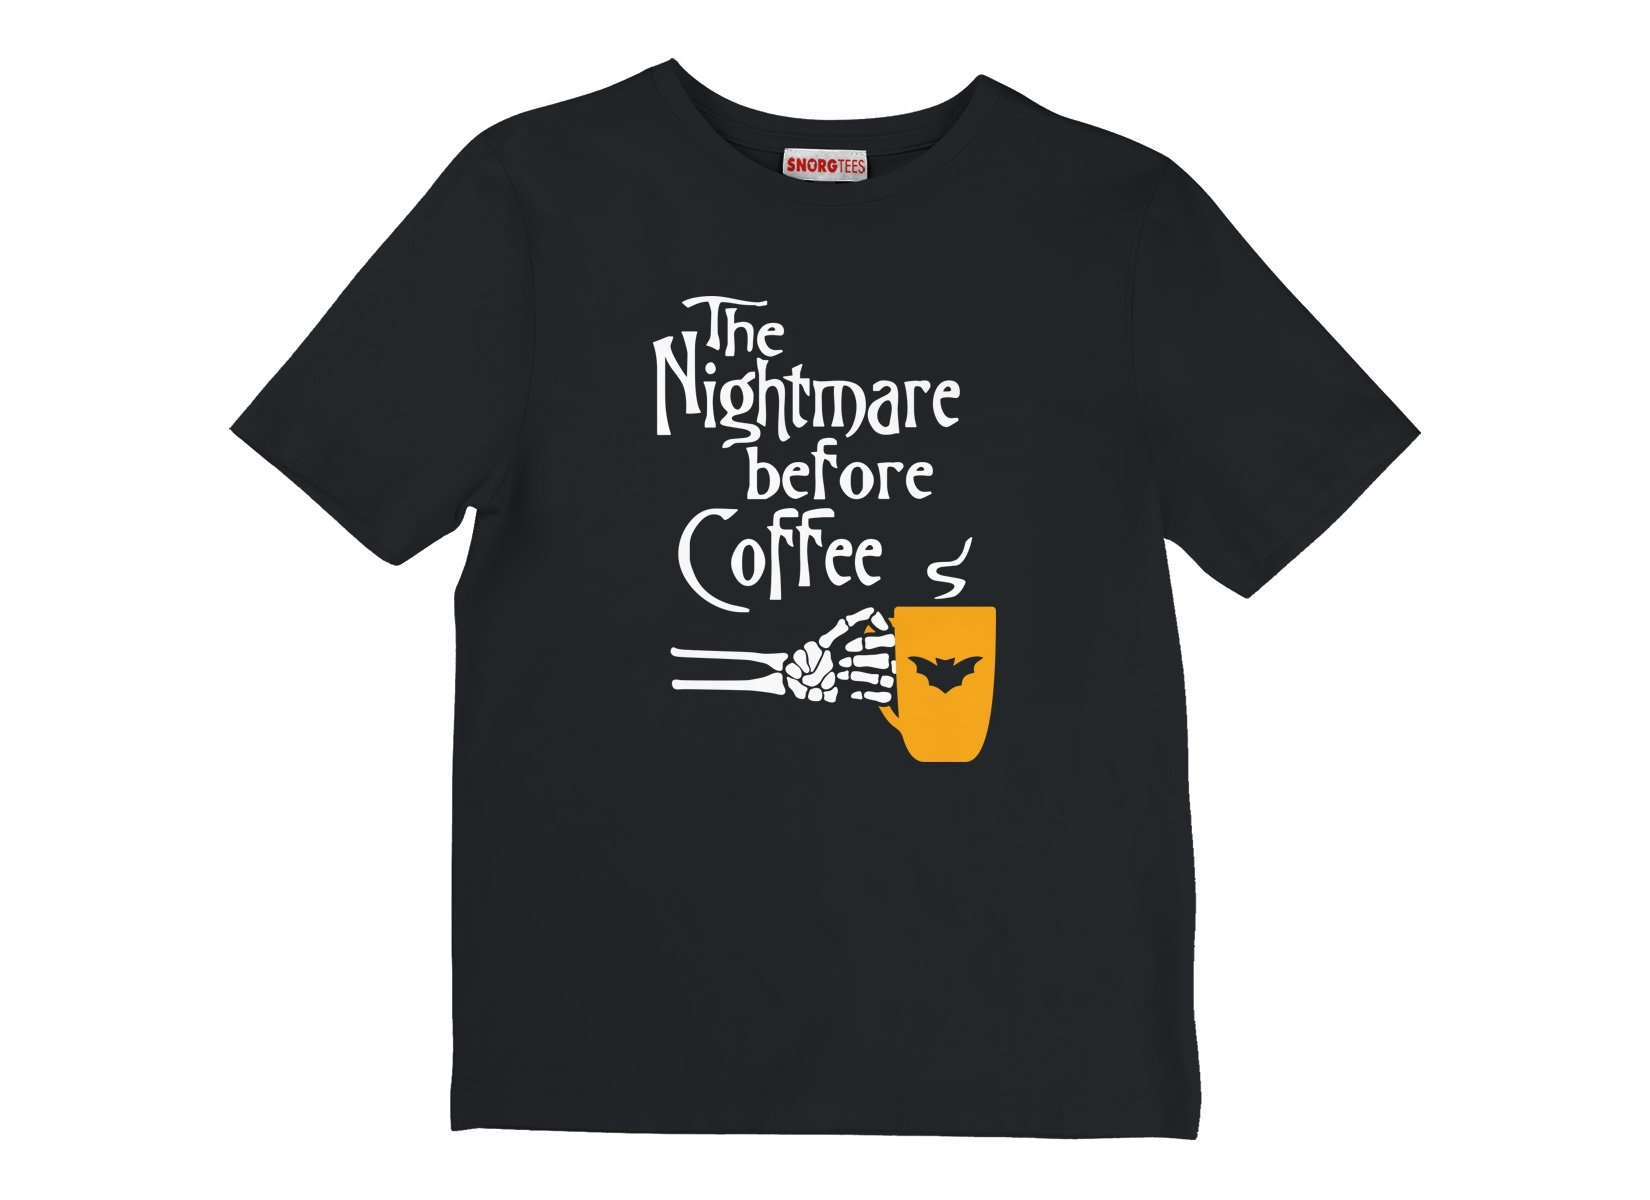 The Nightmare Before Coffee on Kids T-Shirt